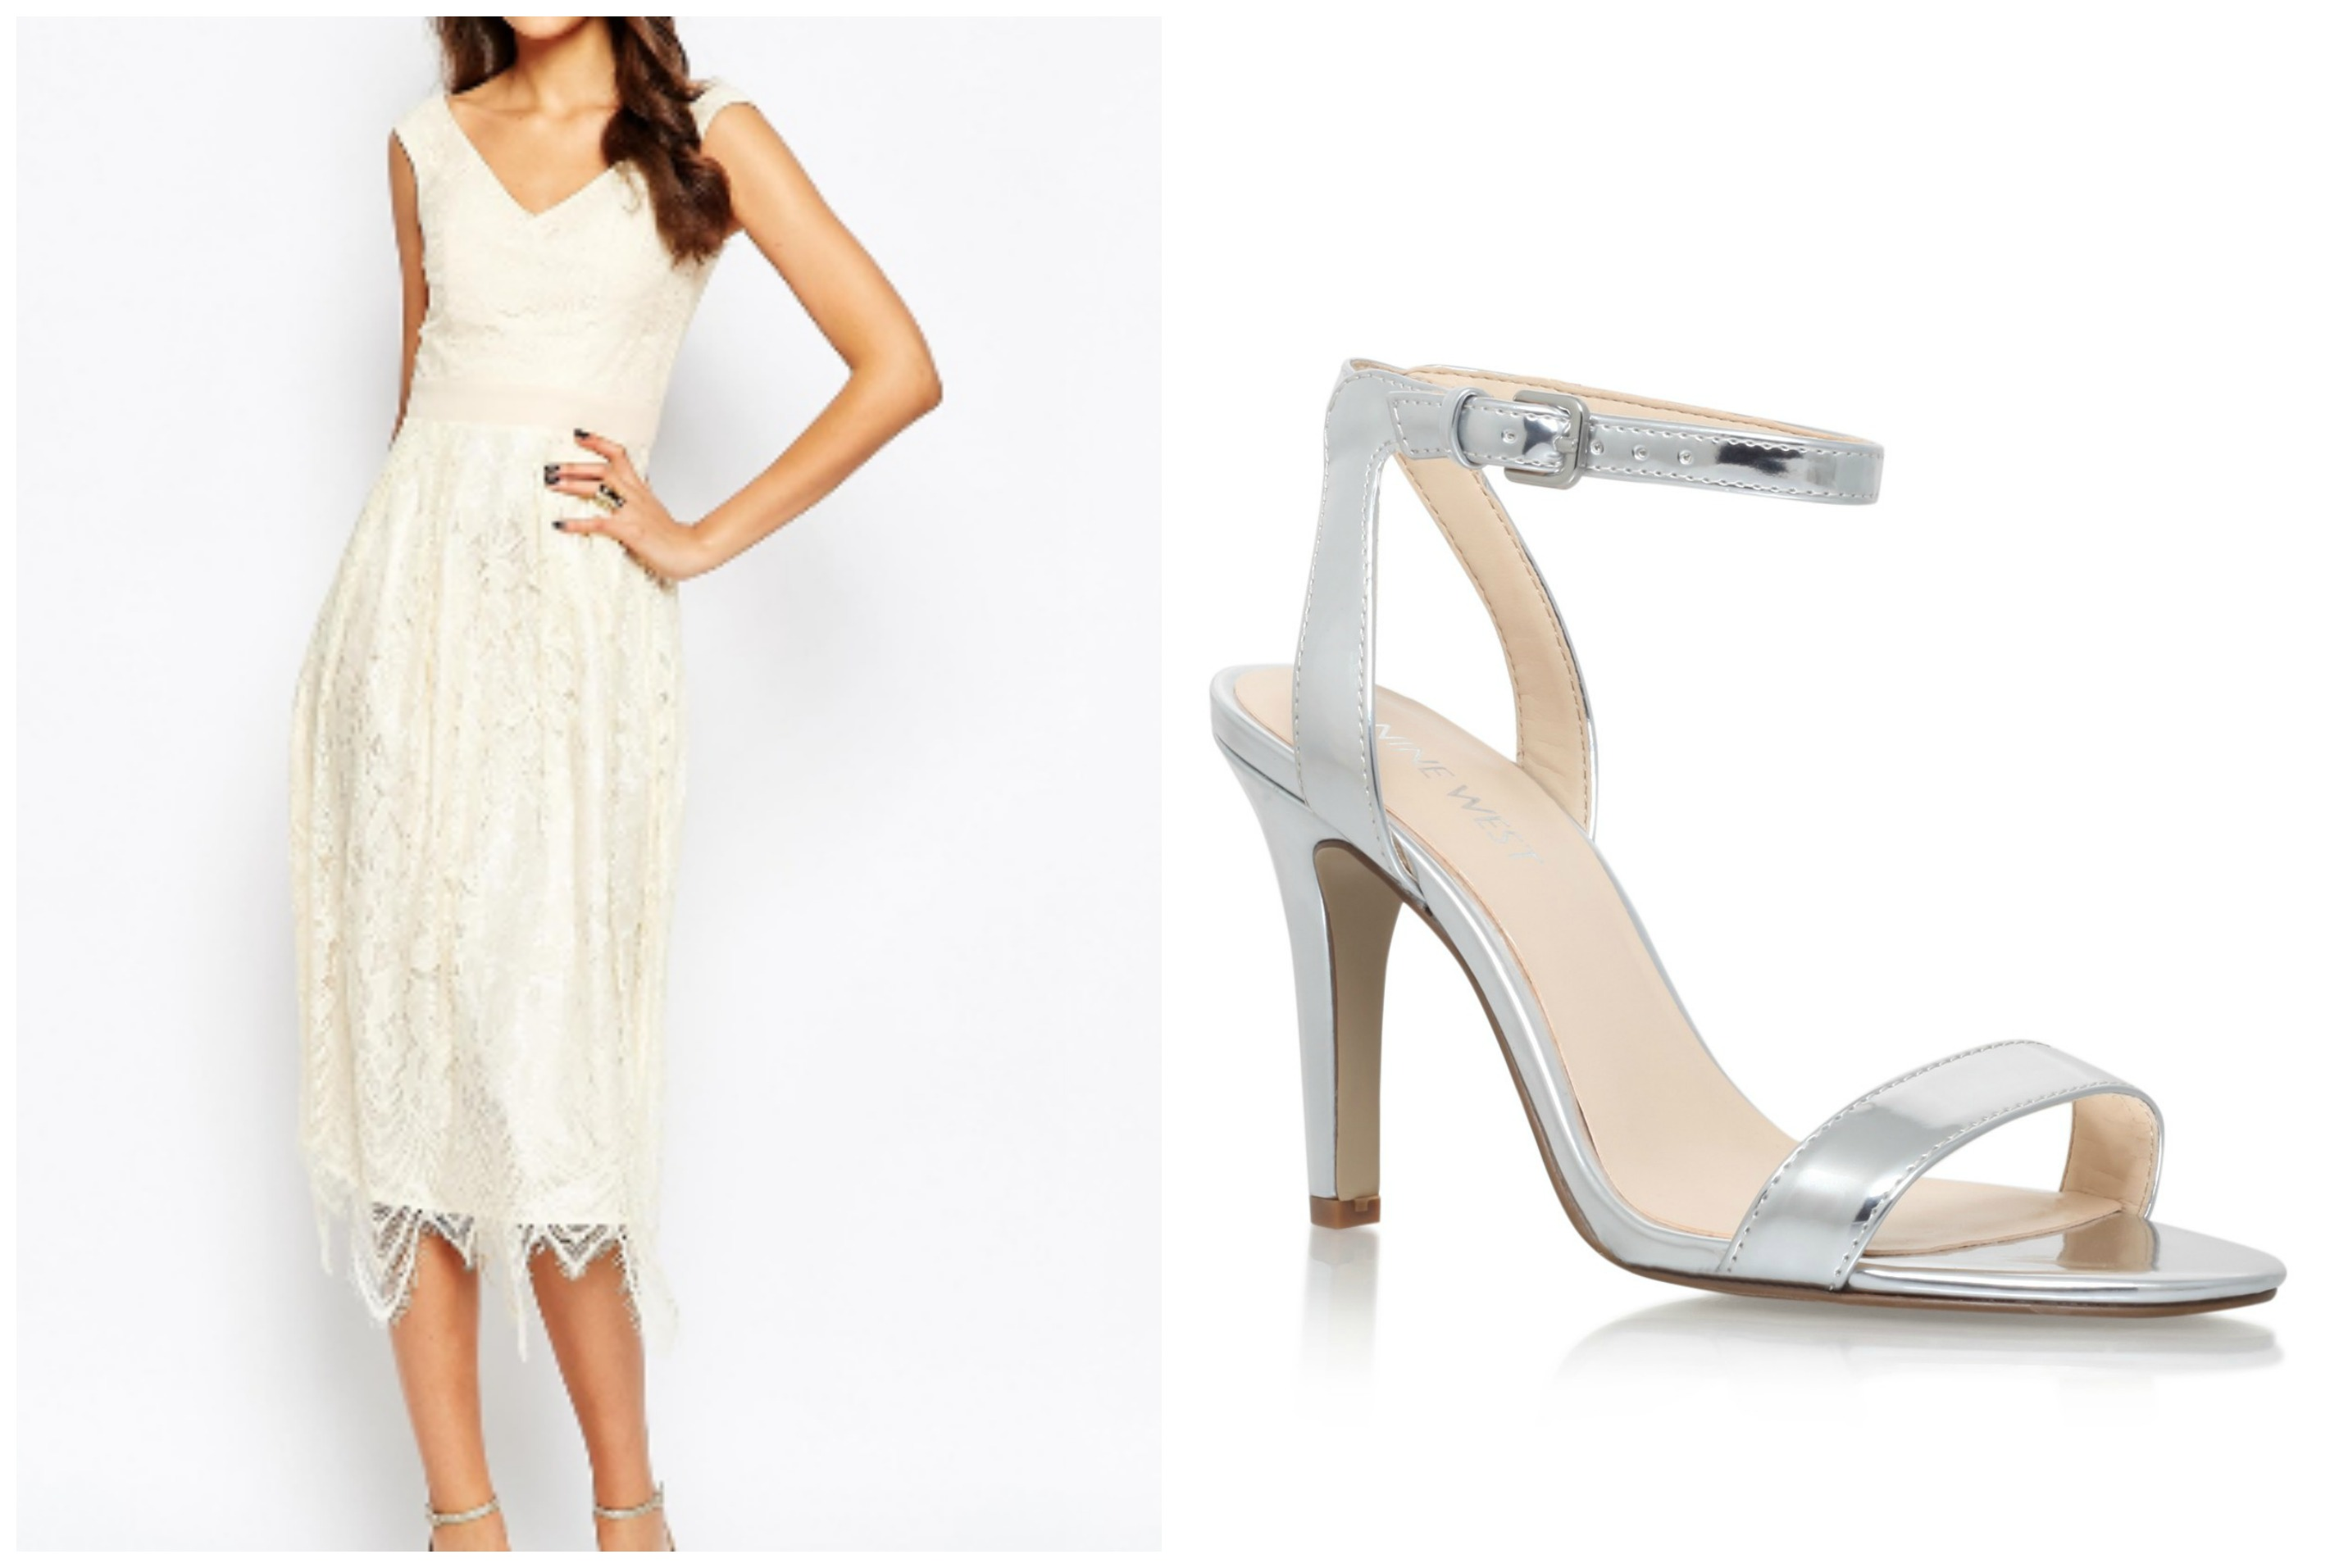 ASOS Tall range cocktail dress with Aniston heels suitable for a charity ball